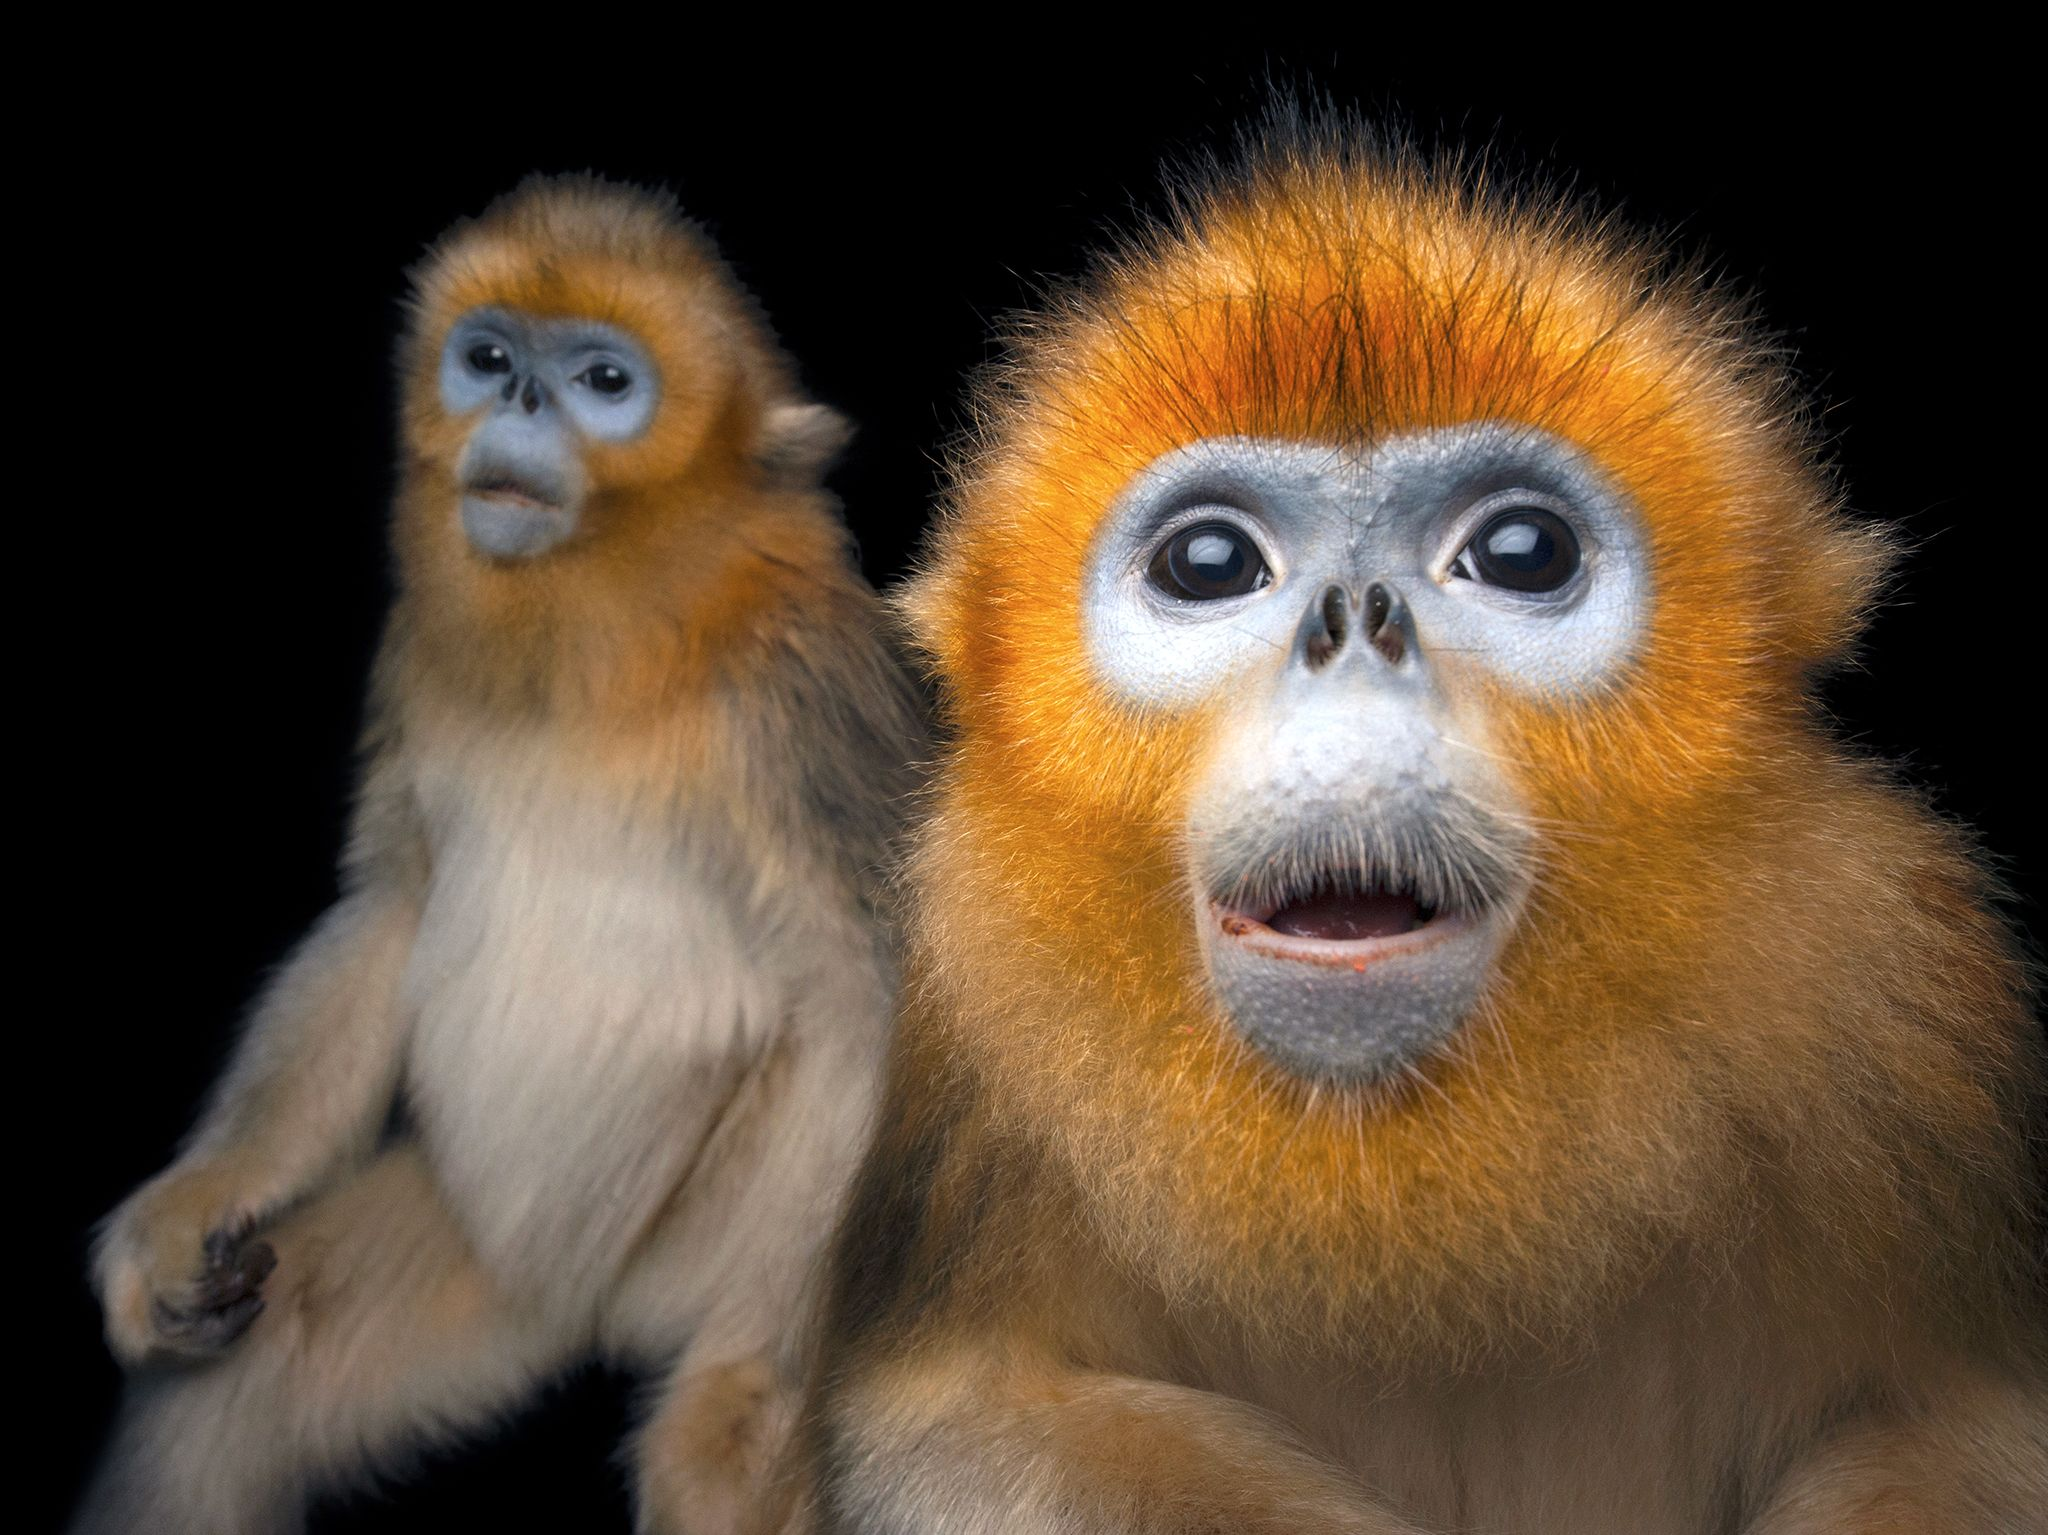 Hong Kong:  Two Golden snub-nosed monkeys, Rhinopithecus roxellana, at Ocean Park Hong Kong.... [Photo of the day - September 2017]